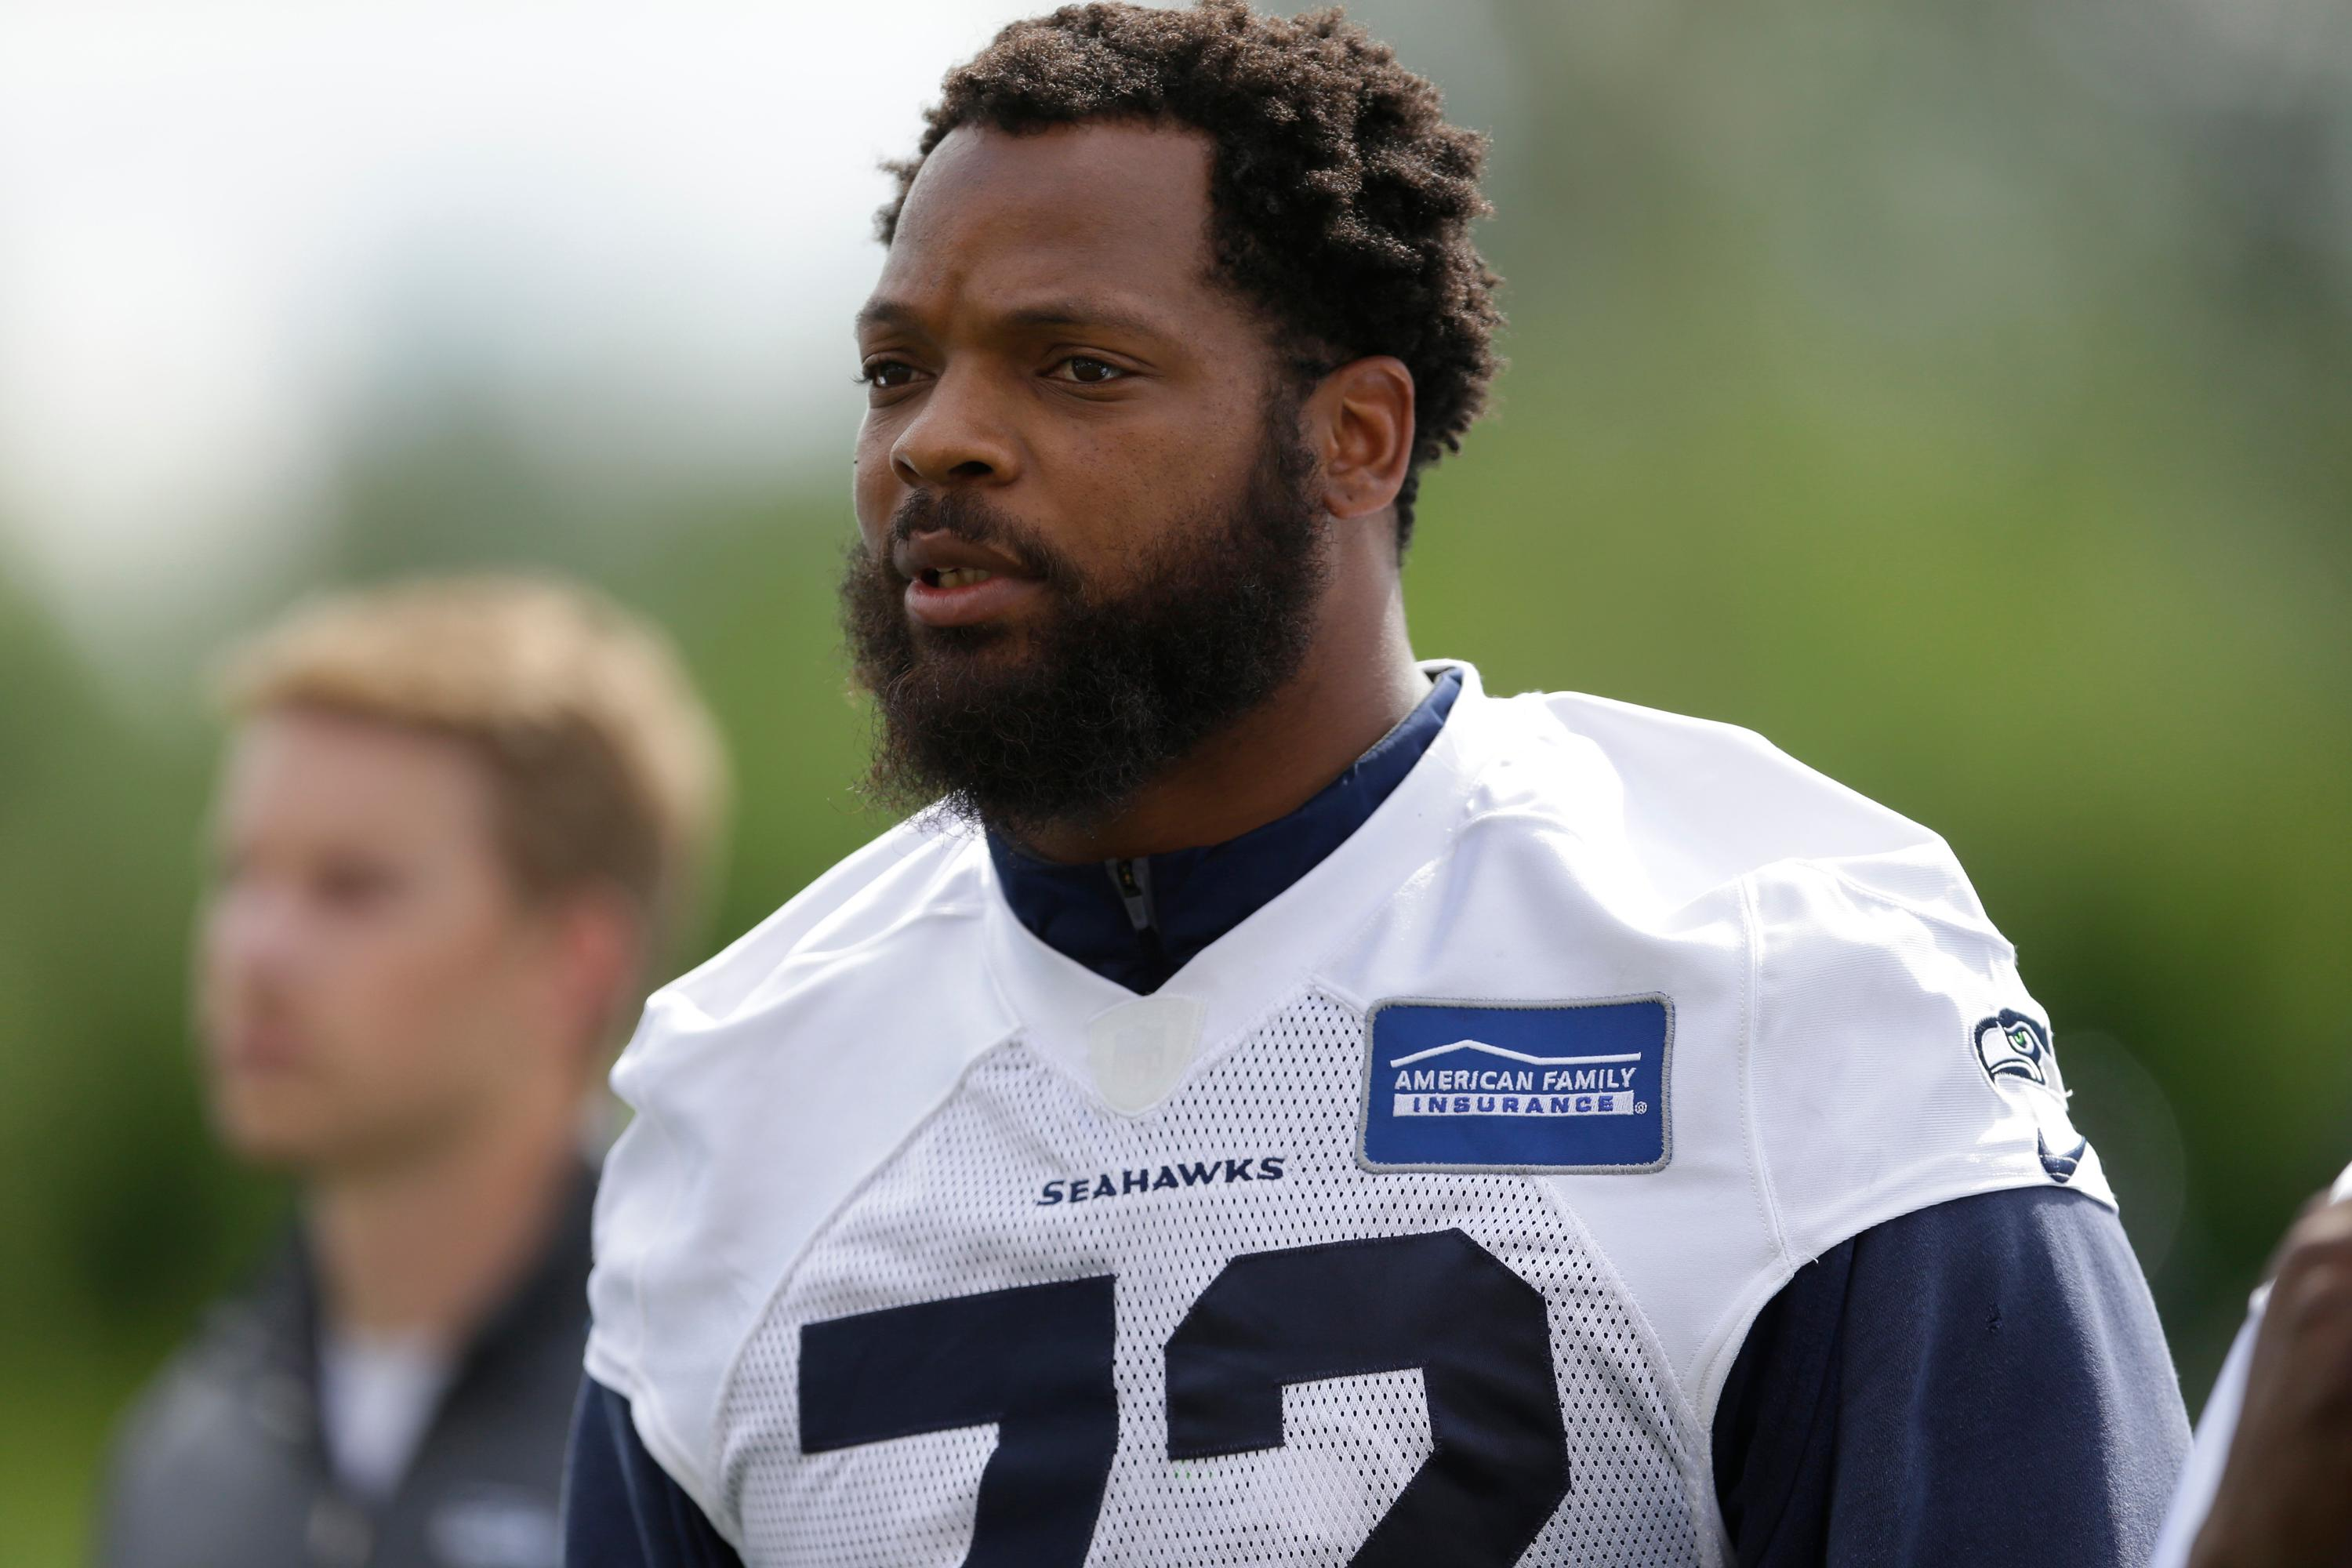 FILE - In this June 13, 2017, file photo, Seattle Seahawks defensive end Michael Bennett walks off the field following NFL football practice in Renton, Wash. Bennett said he will sit during the national anthem this season to protest social injustice and segregation. (AP Photo/Ted S. Warren, File)